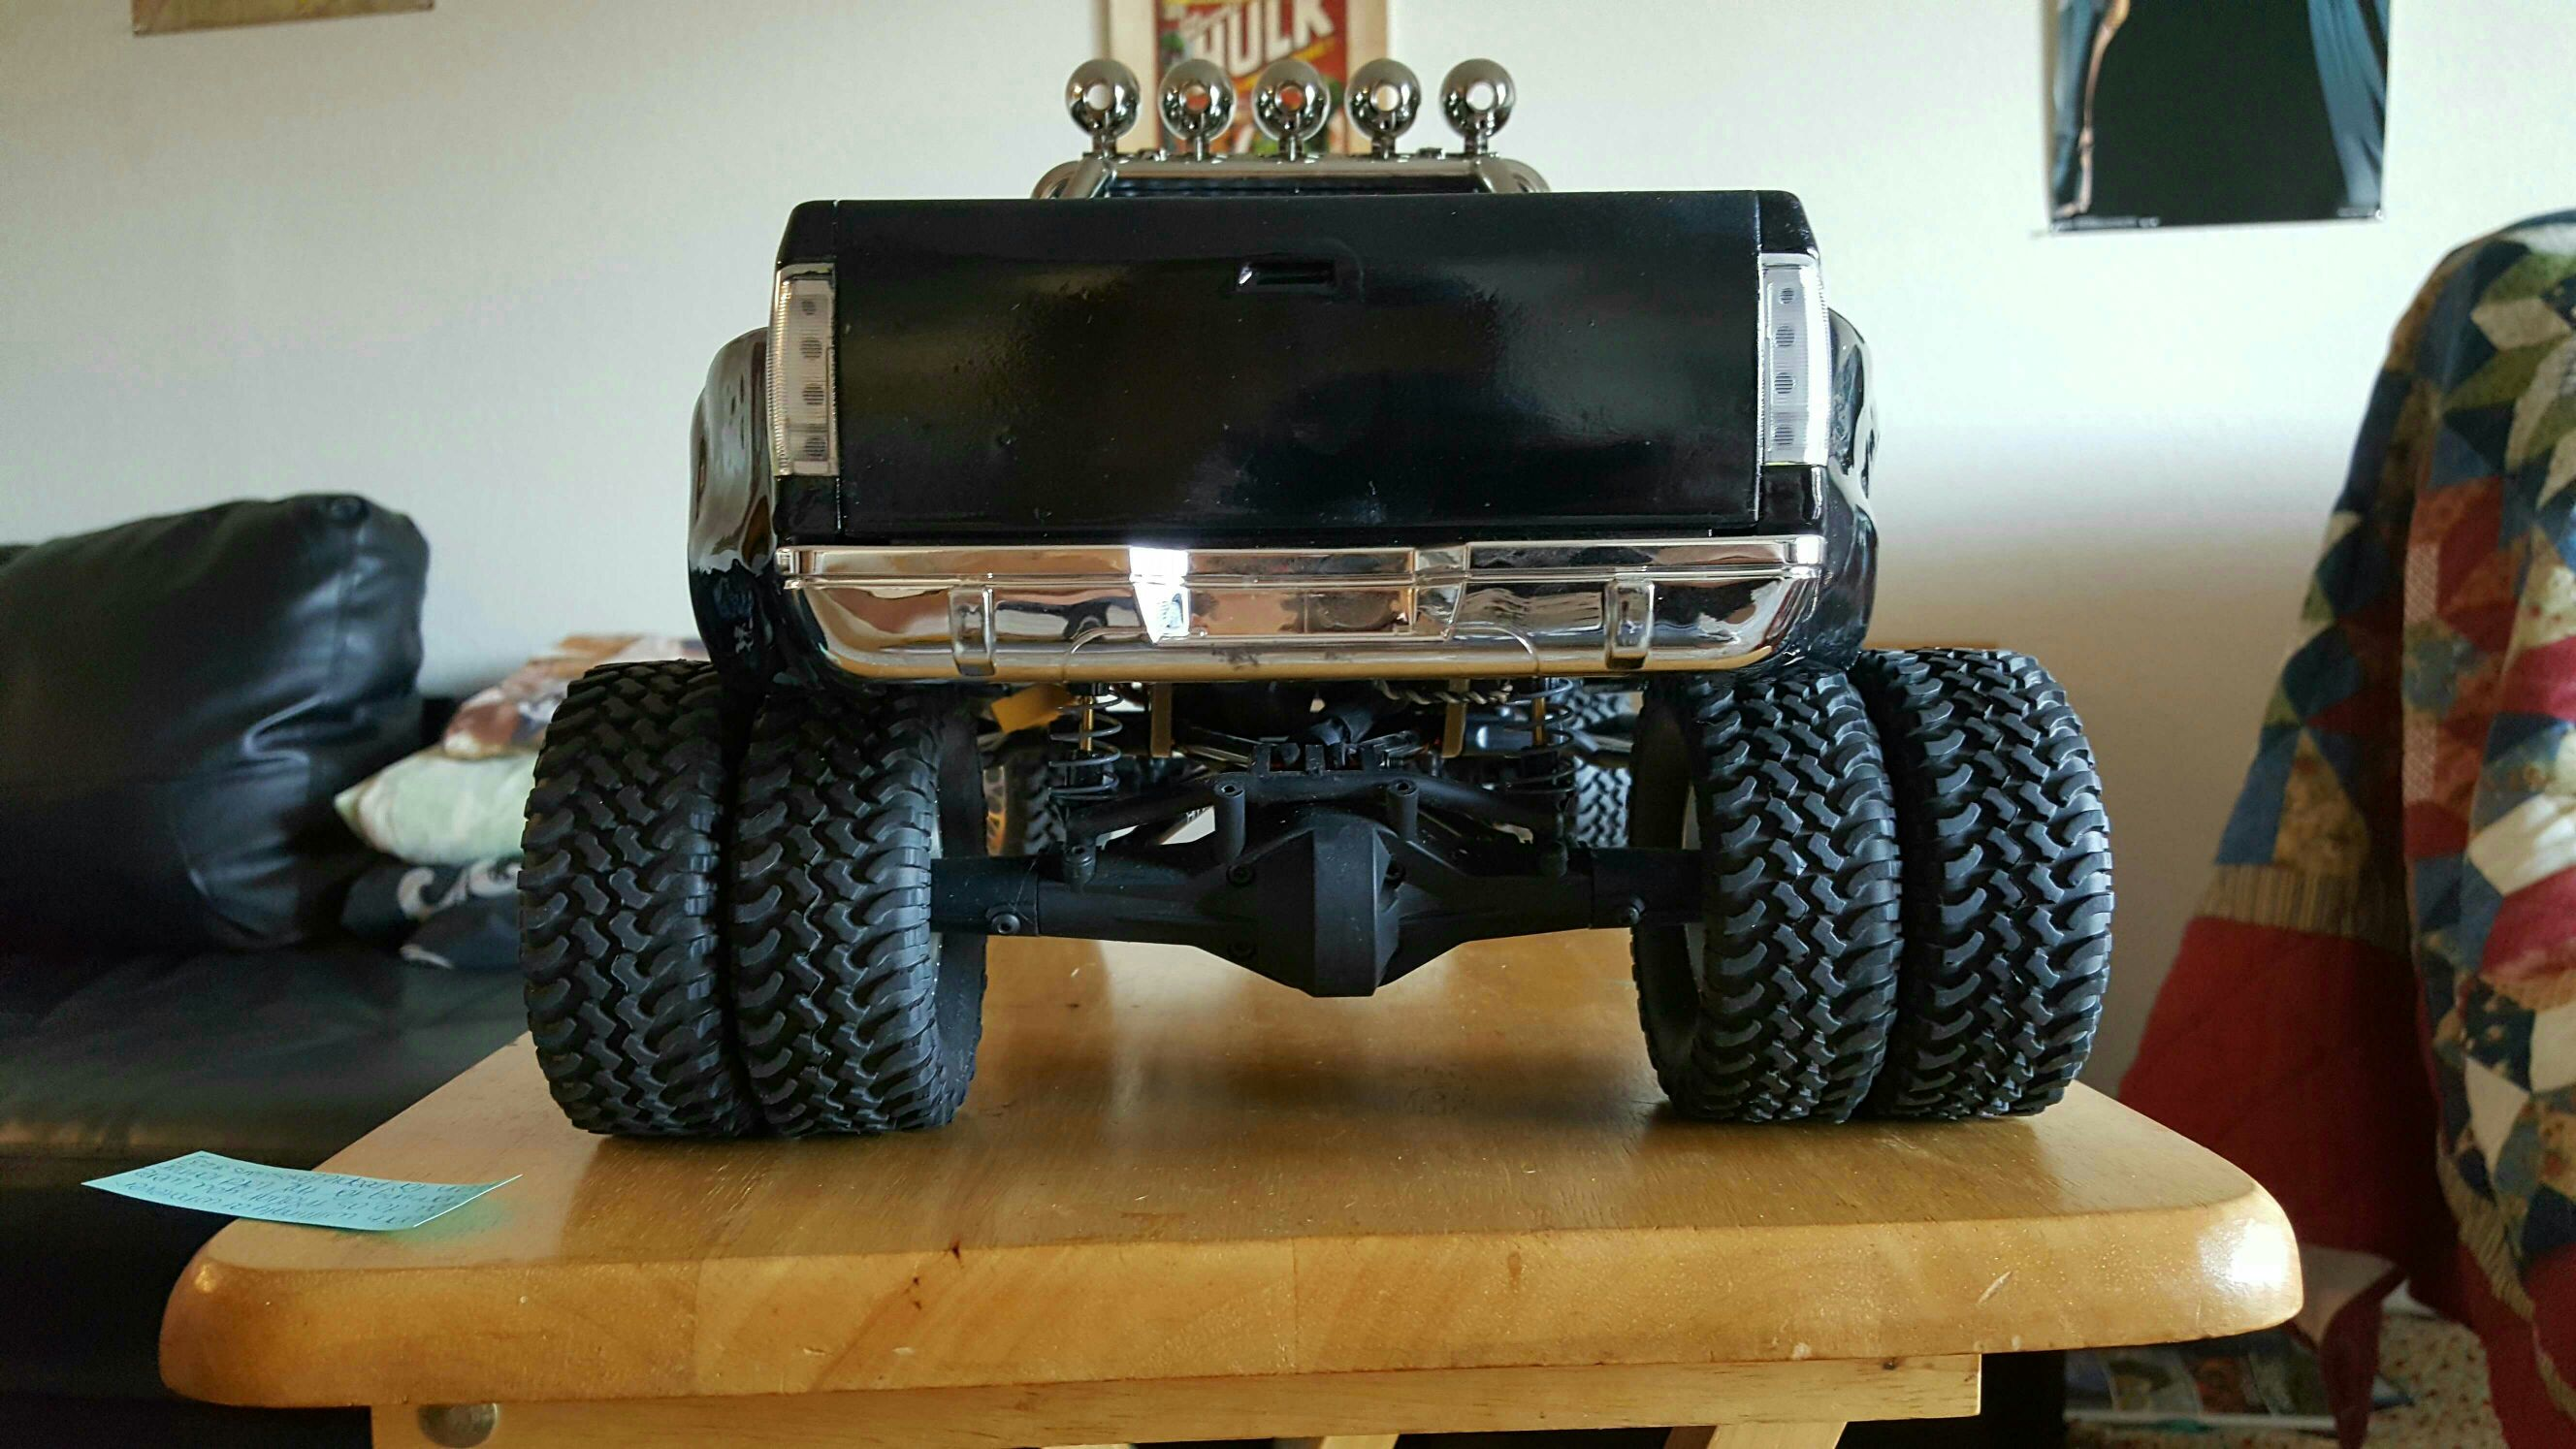 Tamiya f350 dually project | The RCSparks Studio Online ...